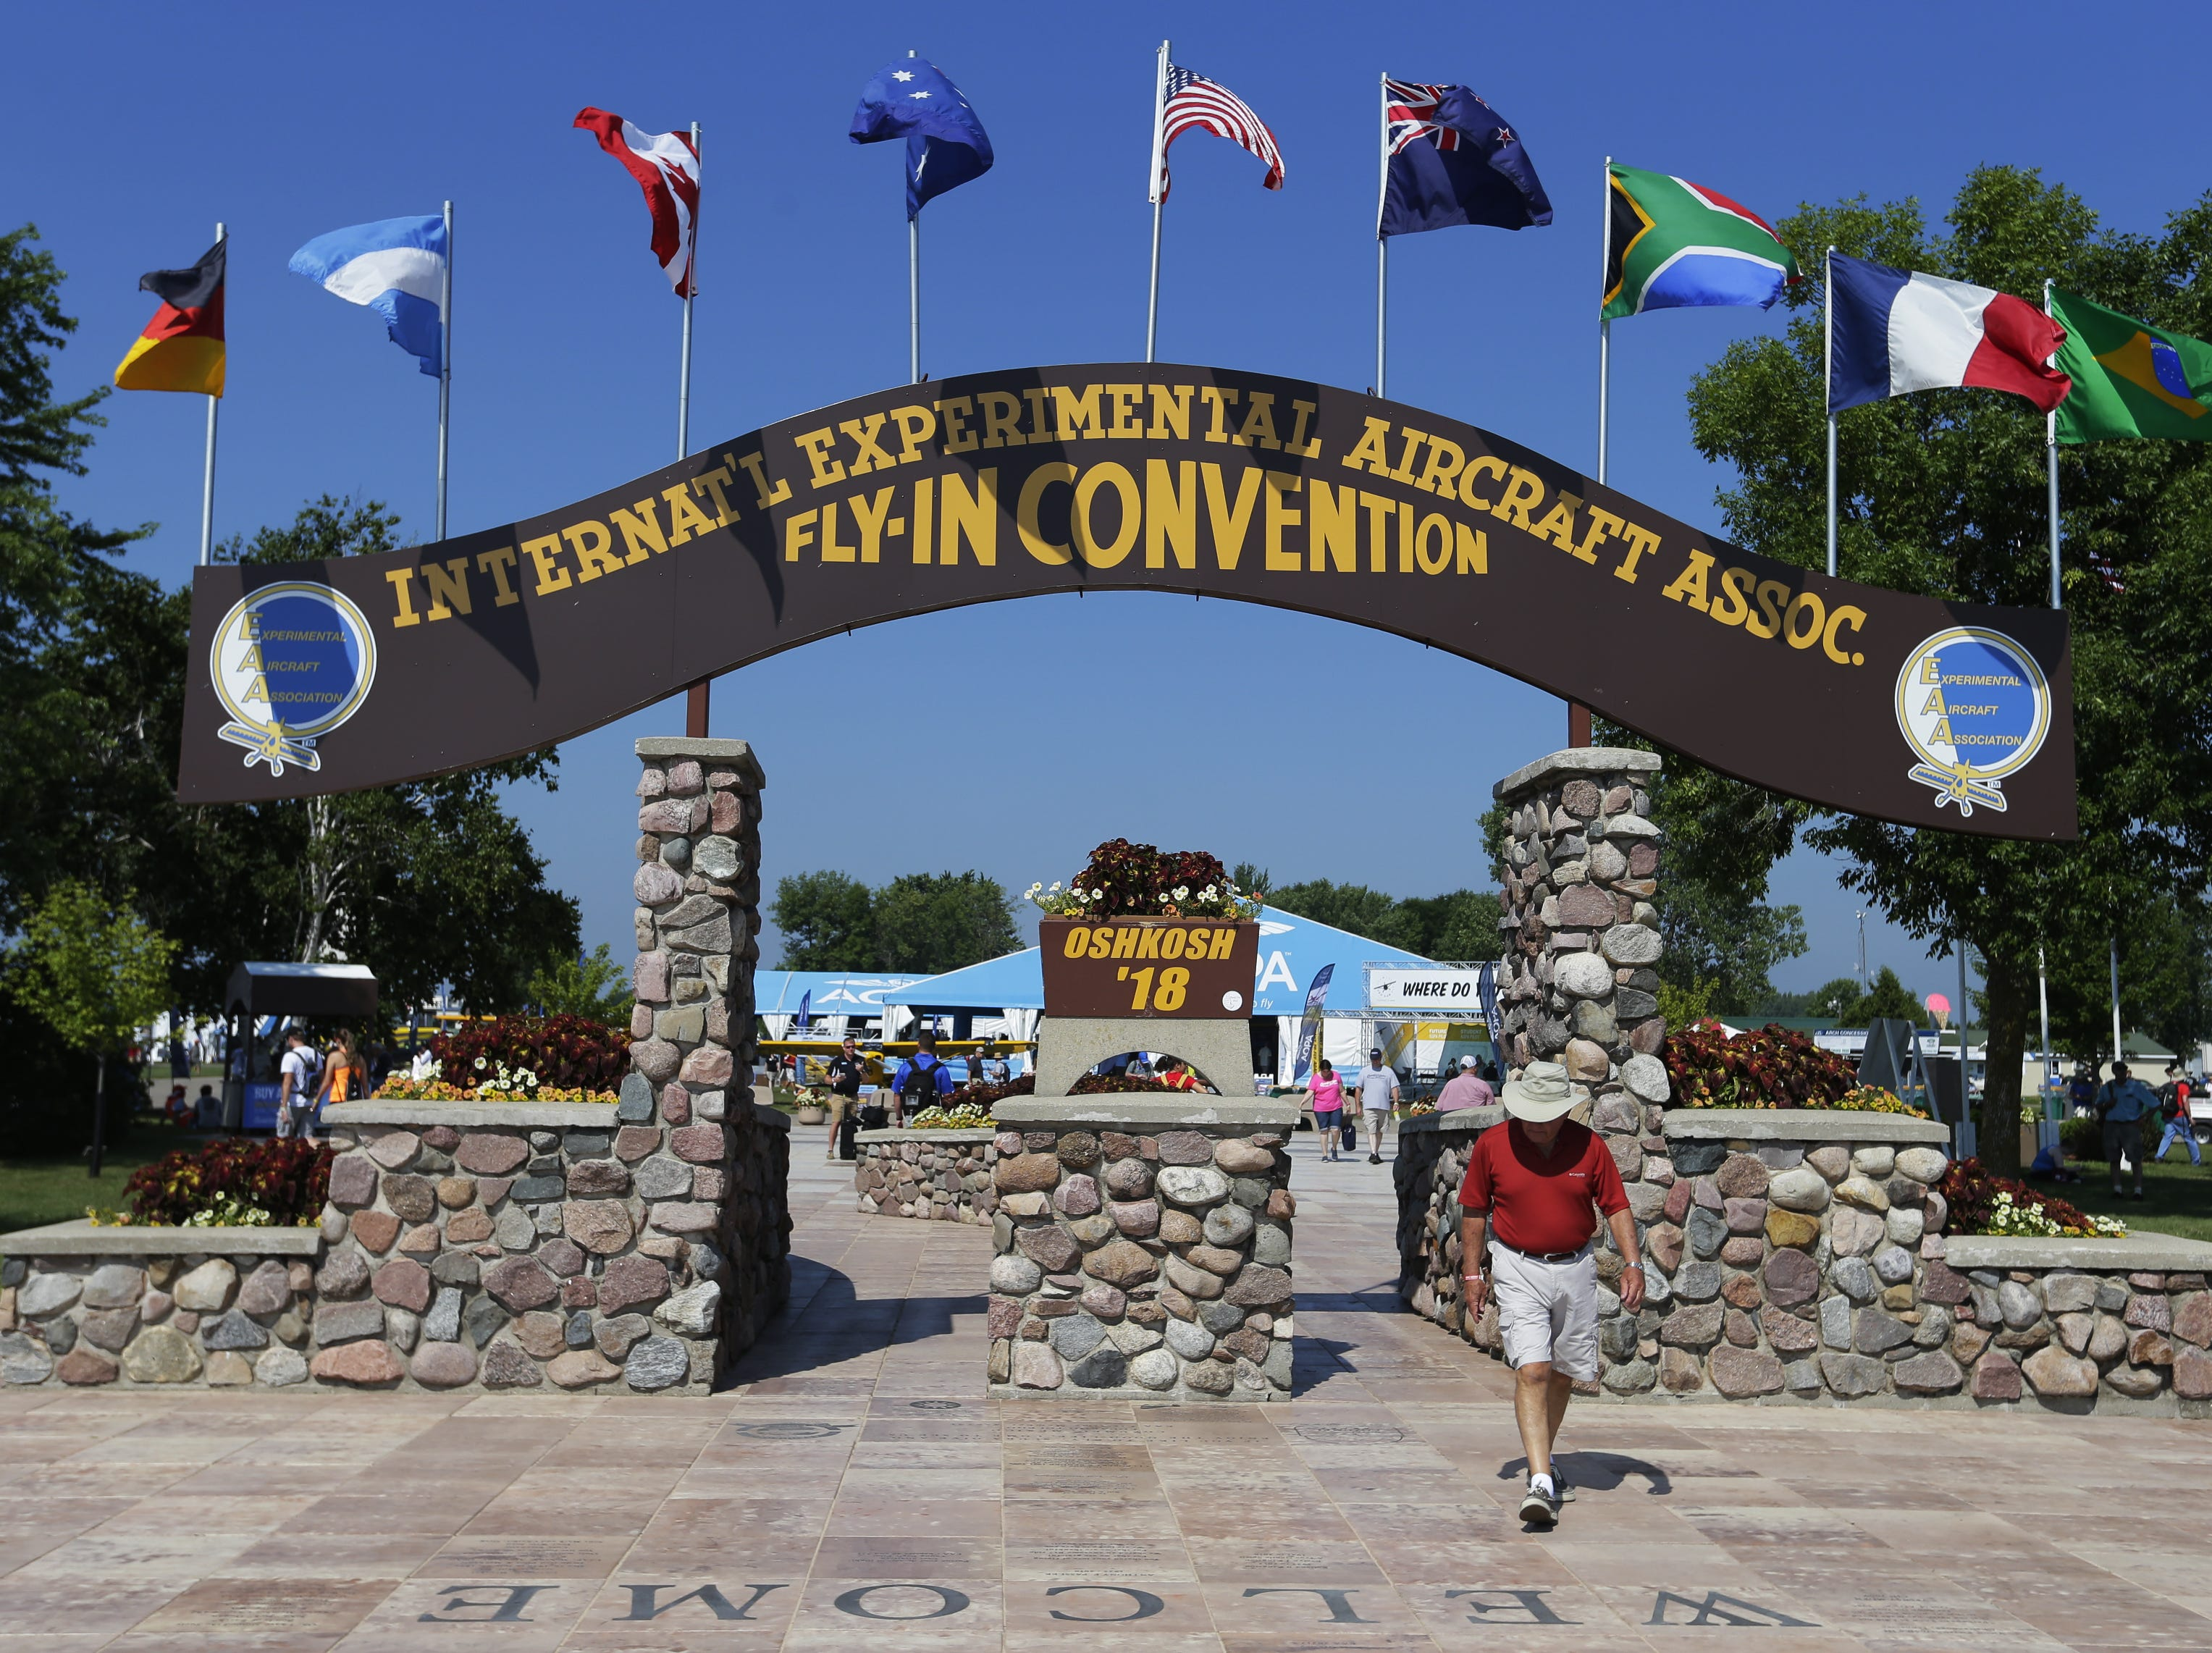 The Fly-In Convention arch is an icon as people pass to get to the flightline,Tuesday, July 24, 2018, in Oshkosh, Wis.  The 66th annual Experimental Aircraft Association Fly-In Convention, AirVenture 2018 draws over 500,000 people annually to the area.  The convention runs through July 29. Joe Sienkiewicz/USA Today NETWORK-Wisconsin